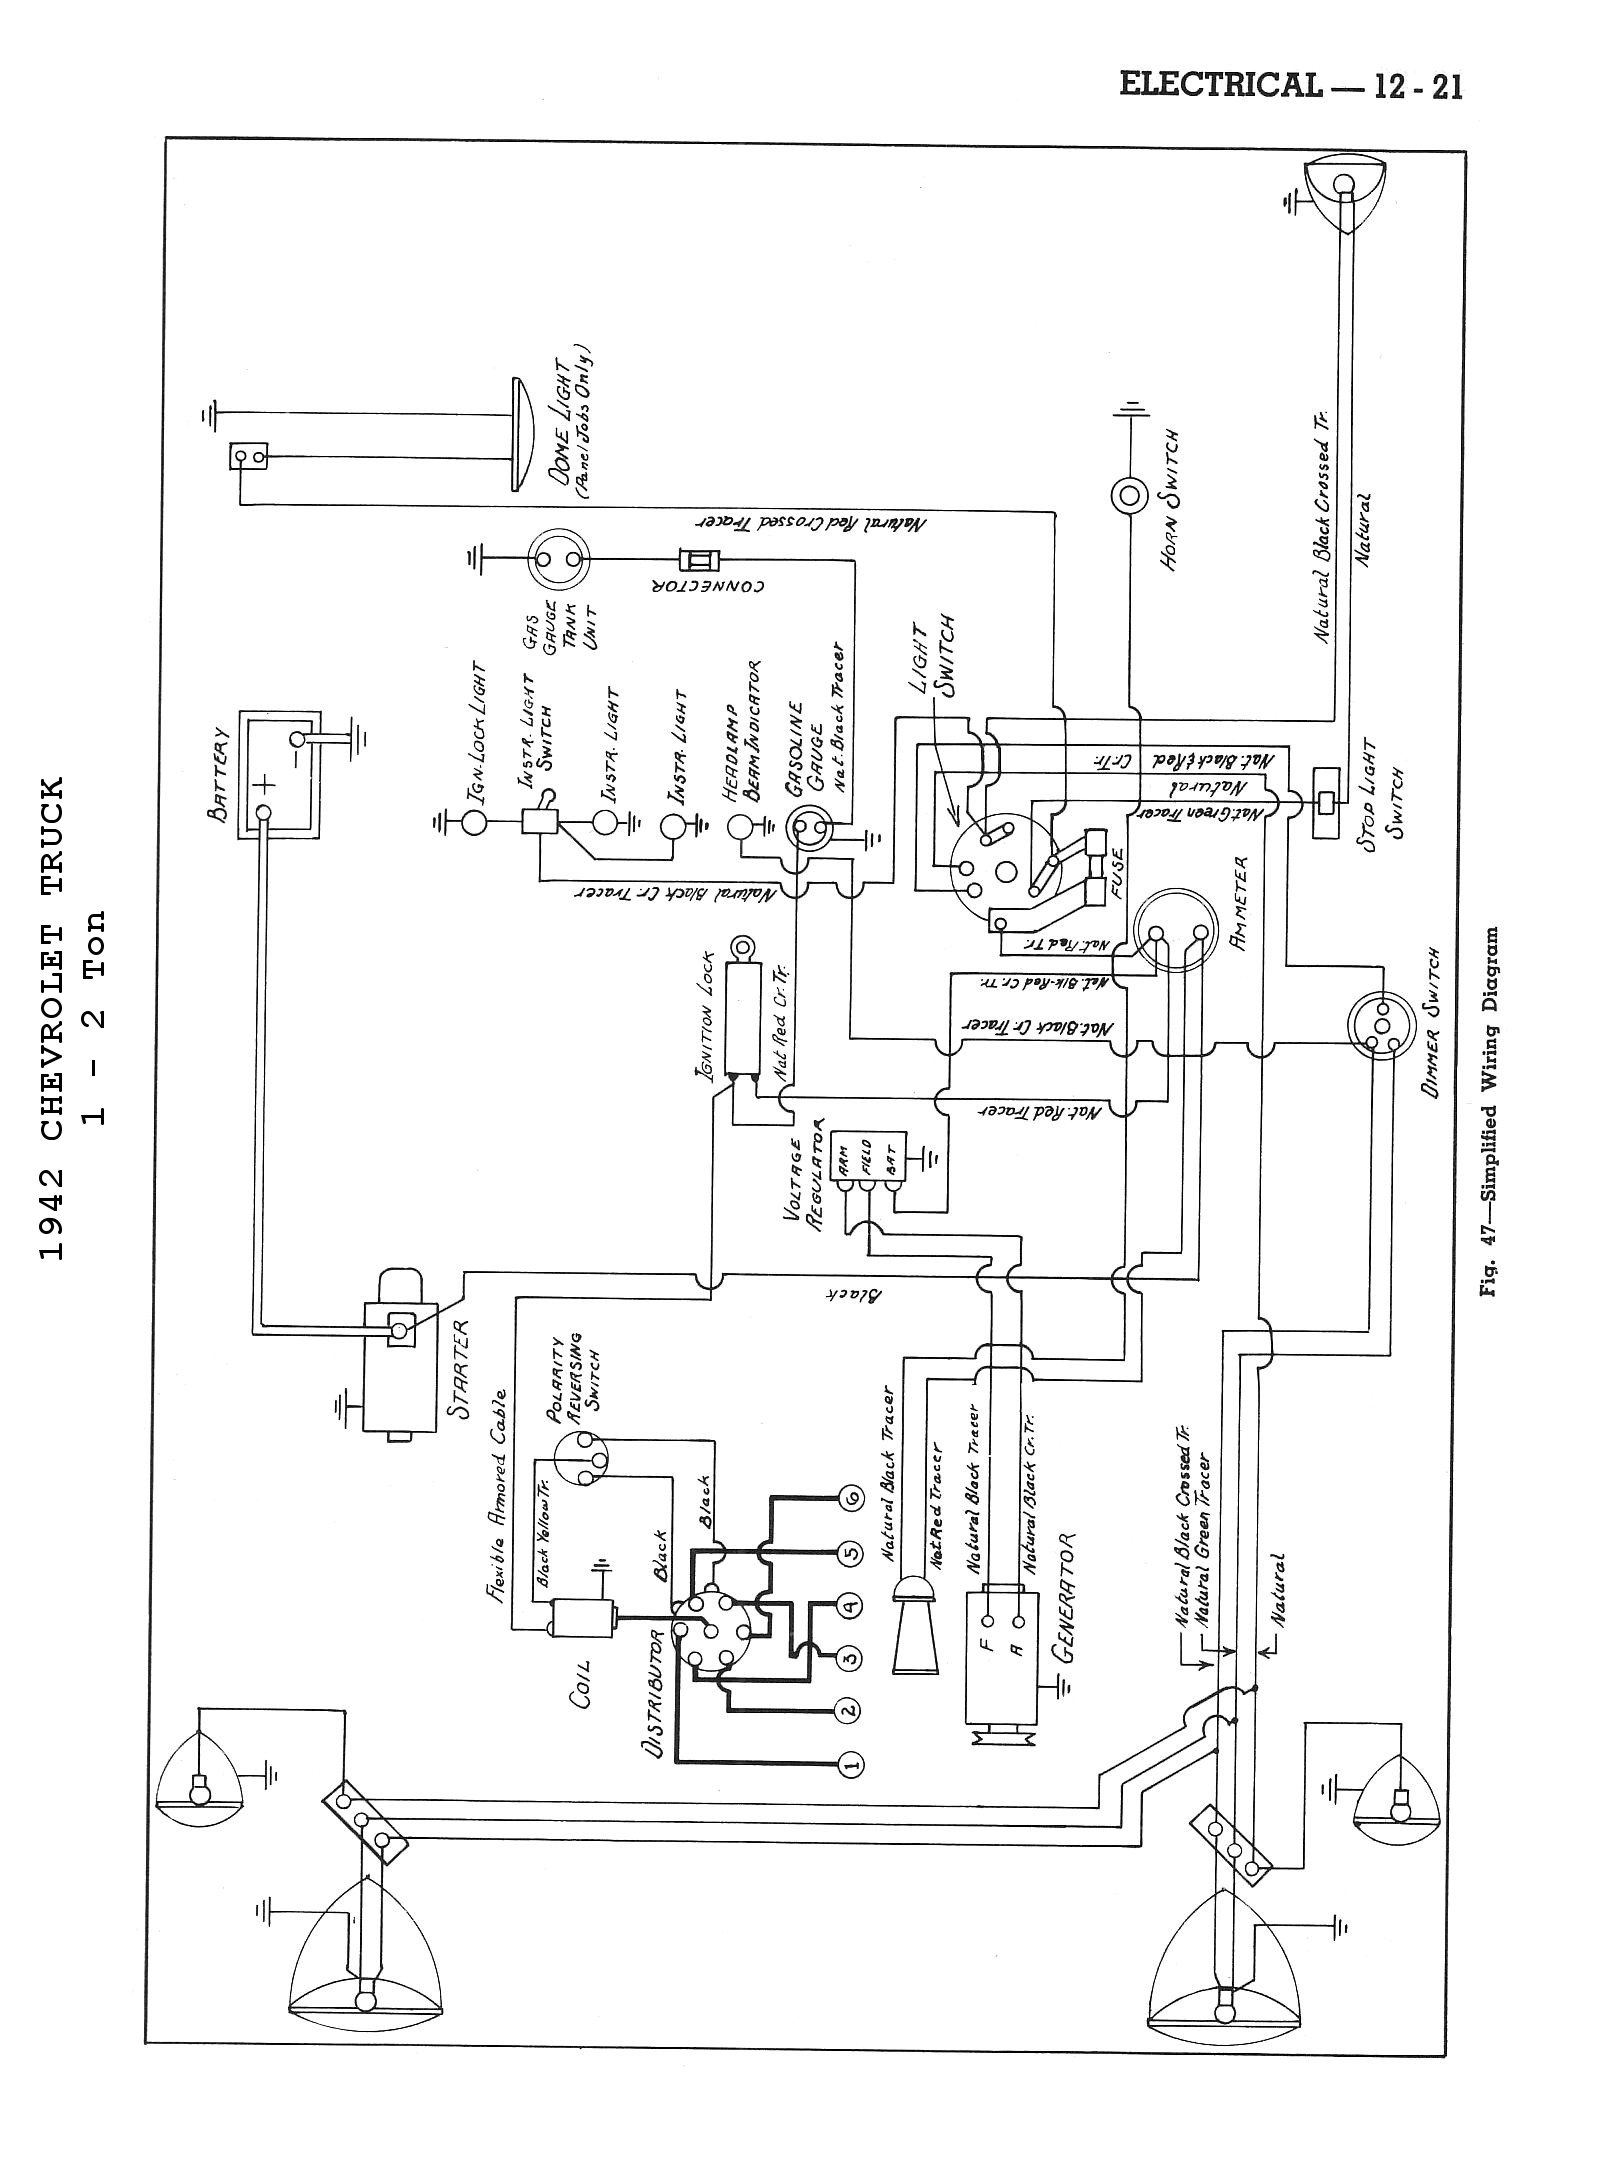 hight resolution of 1927 buick wiring diagram wiring diagram todays rh 9 14 12 1813weddingbarn com buick stereo wiring diagram buick regal wiring diagram